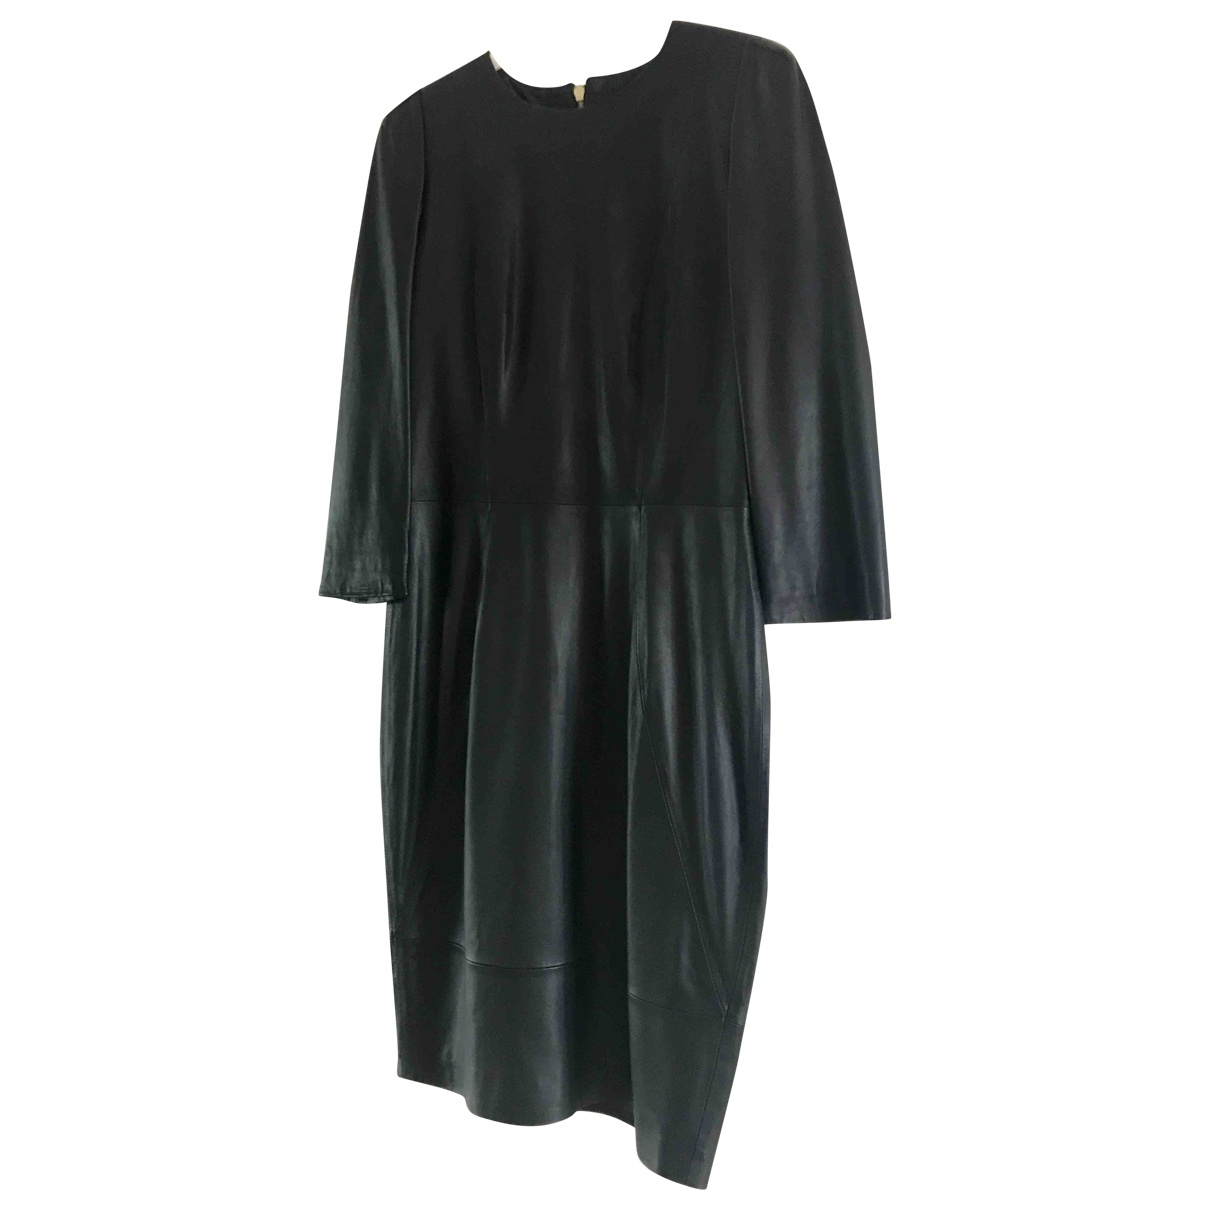 By Malene Birger \N Black Leather dress for Women M International